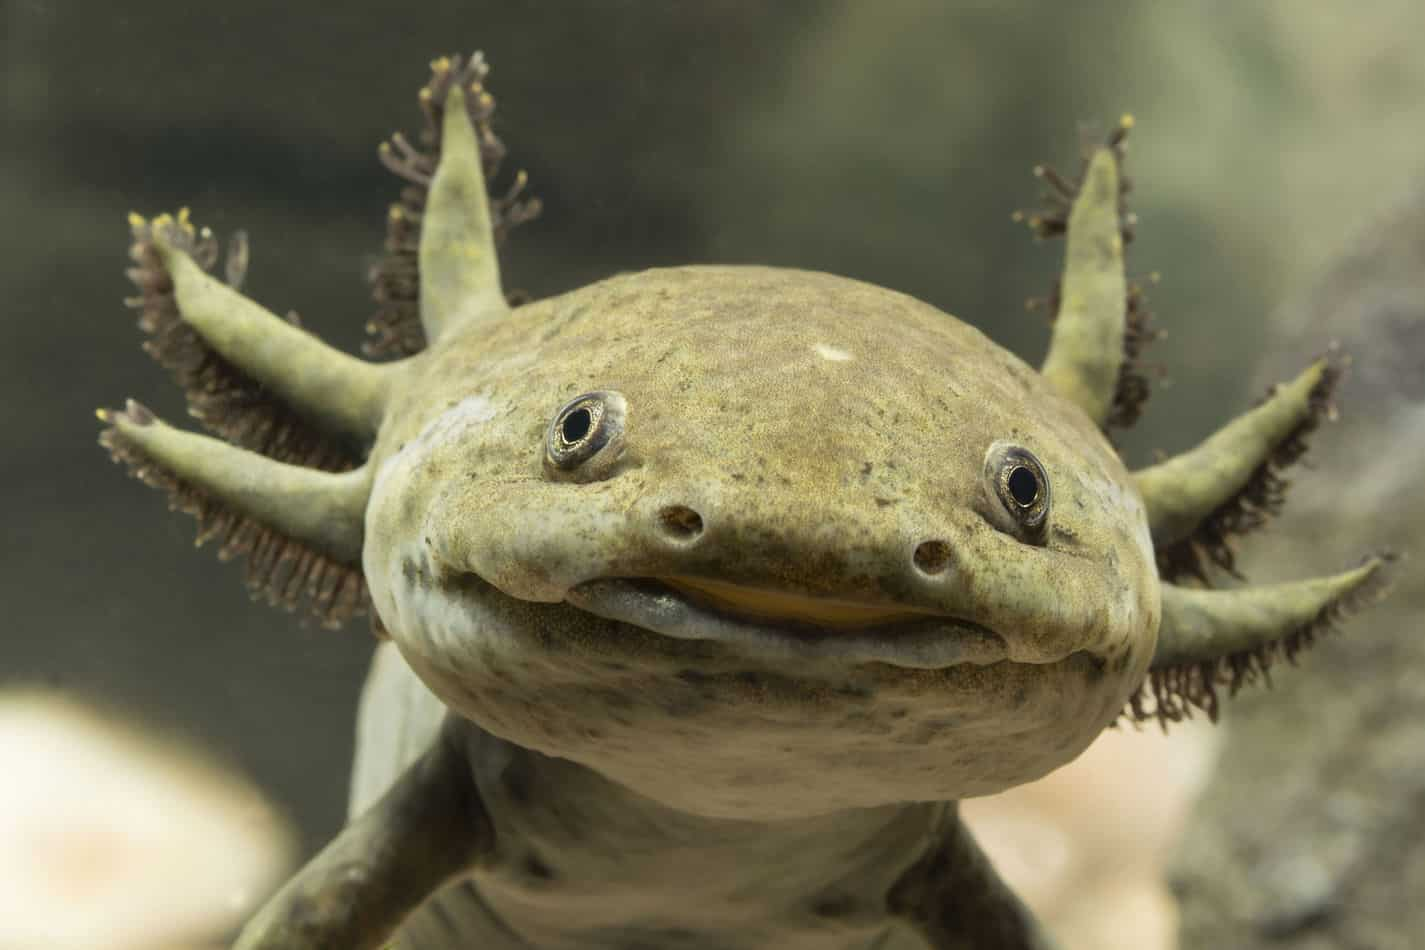 Mudkip and Wooper Pokemon Are Based on the Axolotl